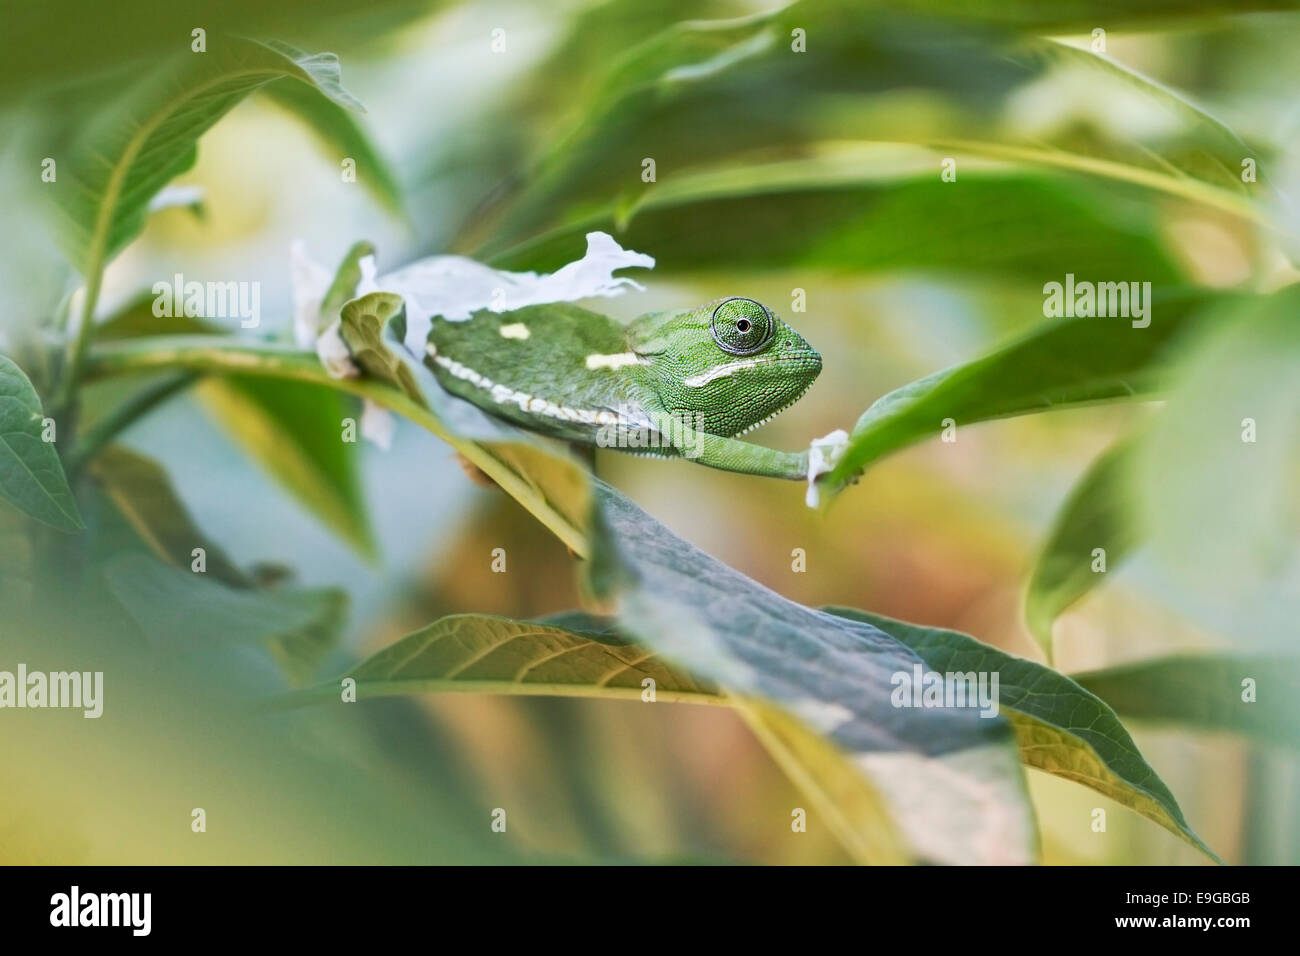 Flap-necked Chameleon (Chamaeleo dilepis) shedding its skin in a shrub in Livingstone, Zambia - Stock Image